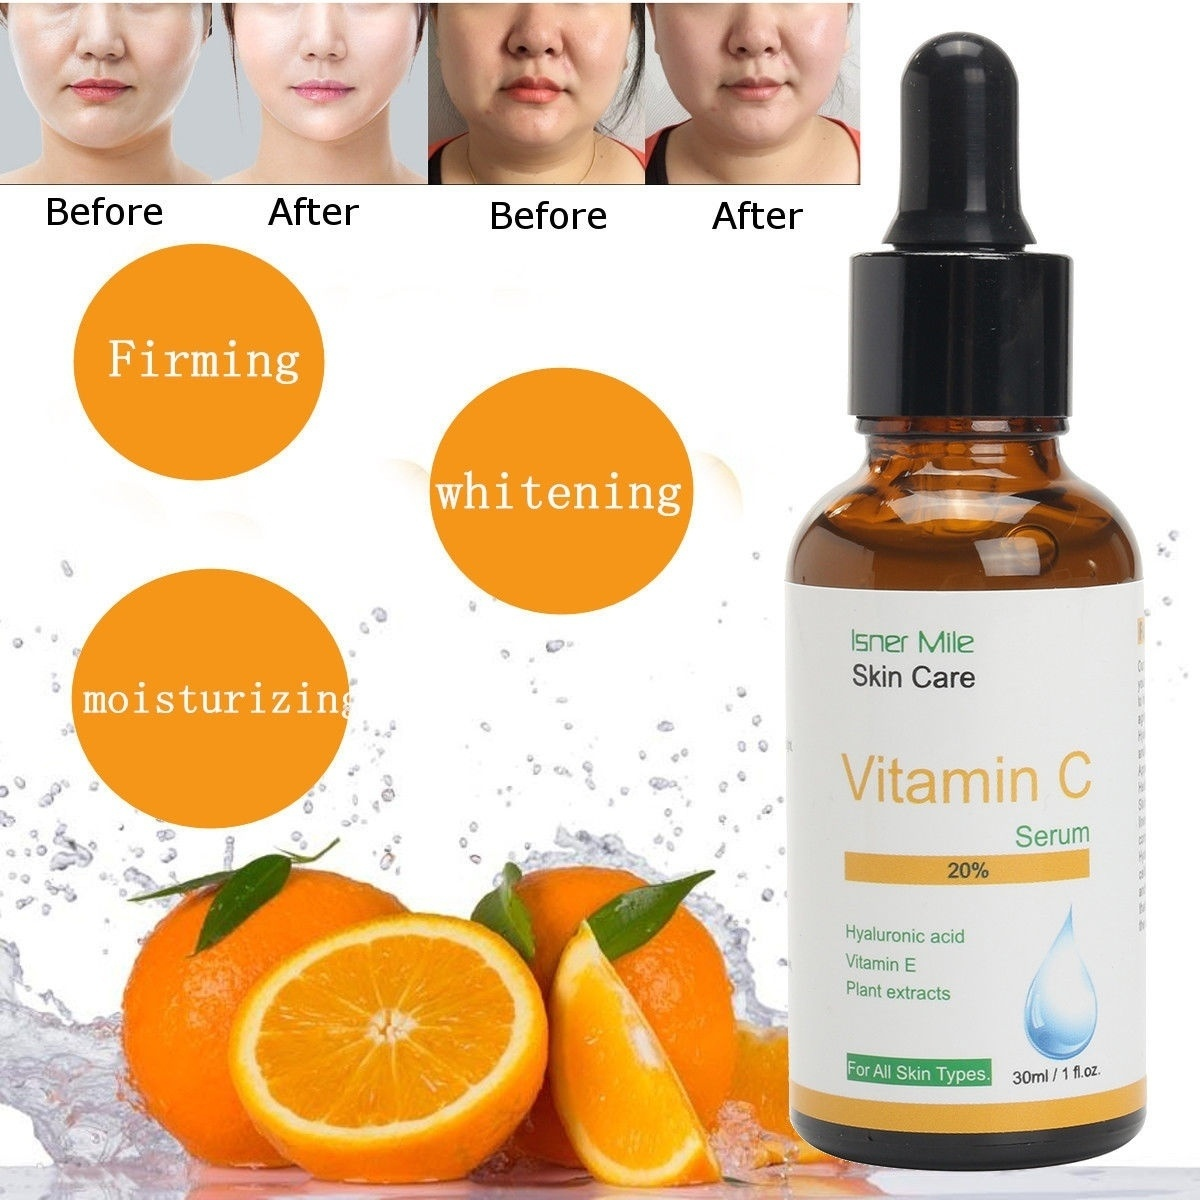 Pure Vitamin C Hyaluronic Acid Serum 20% For Face   BEST Anti Aging Sample